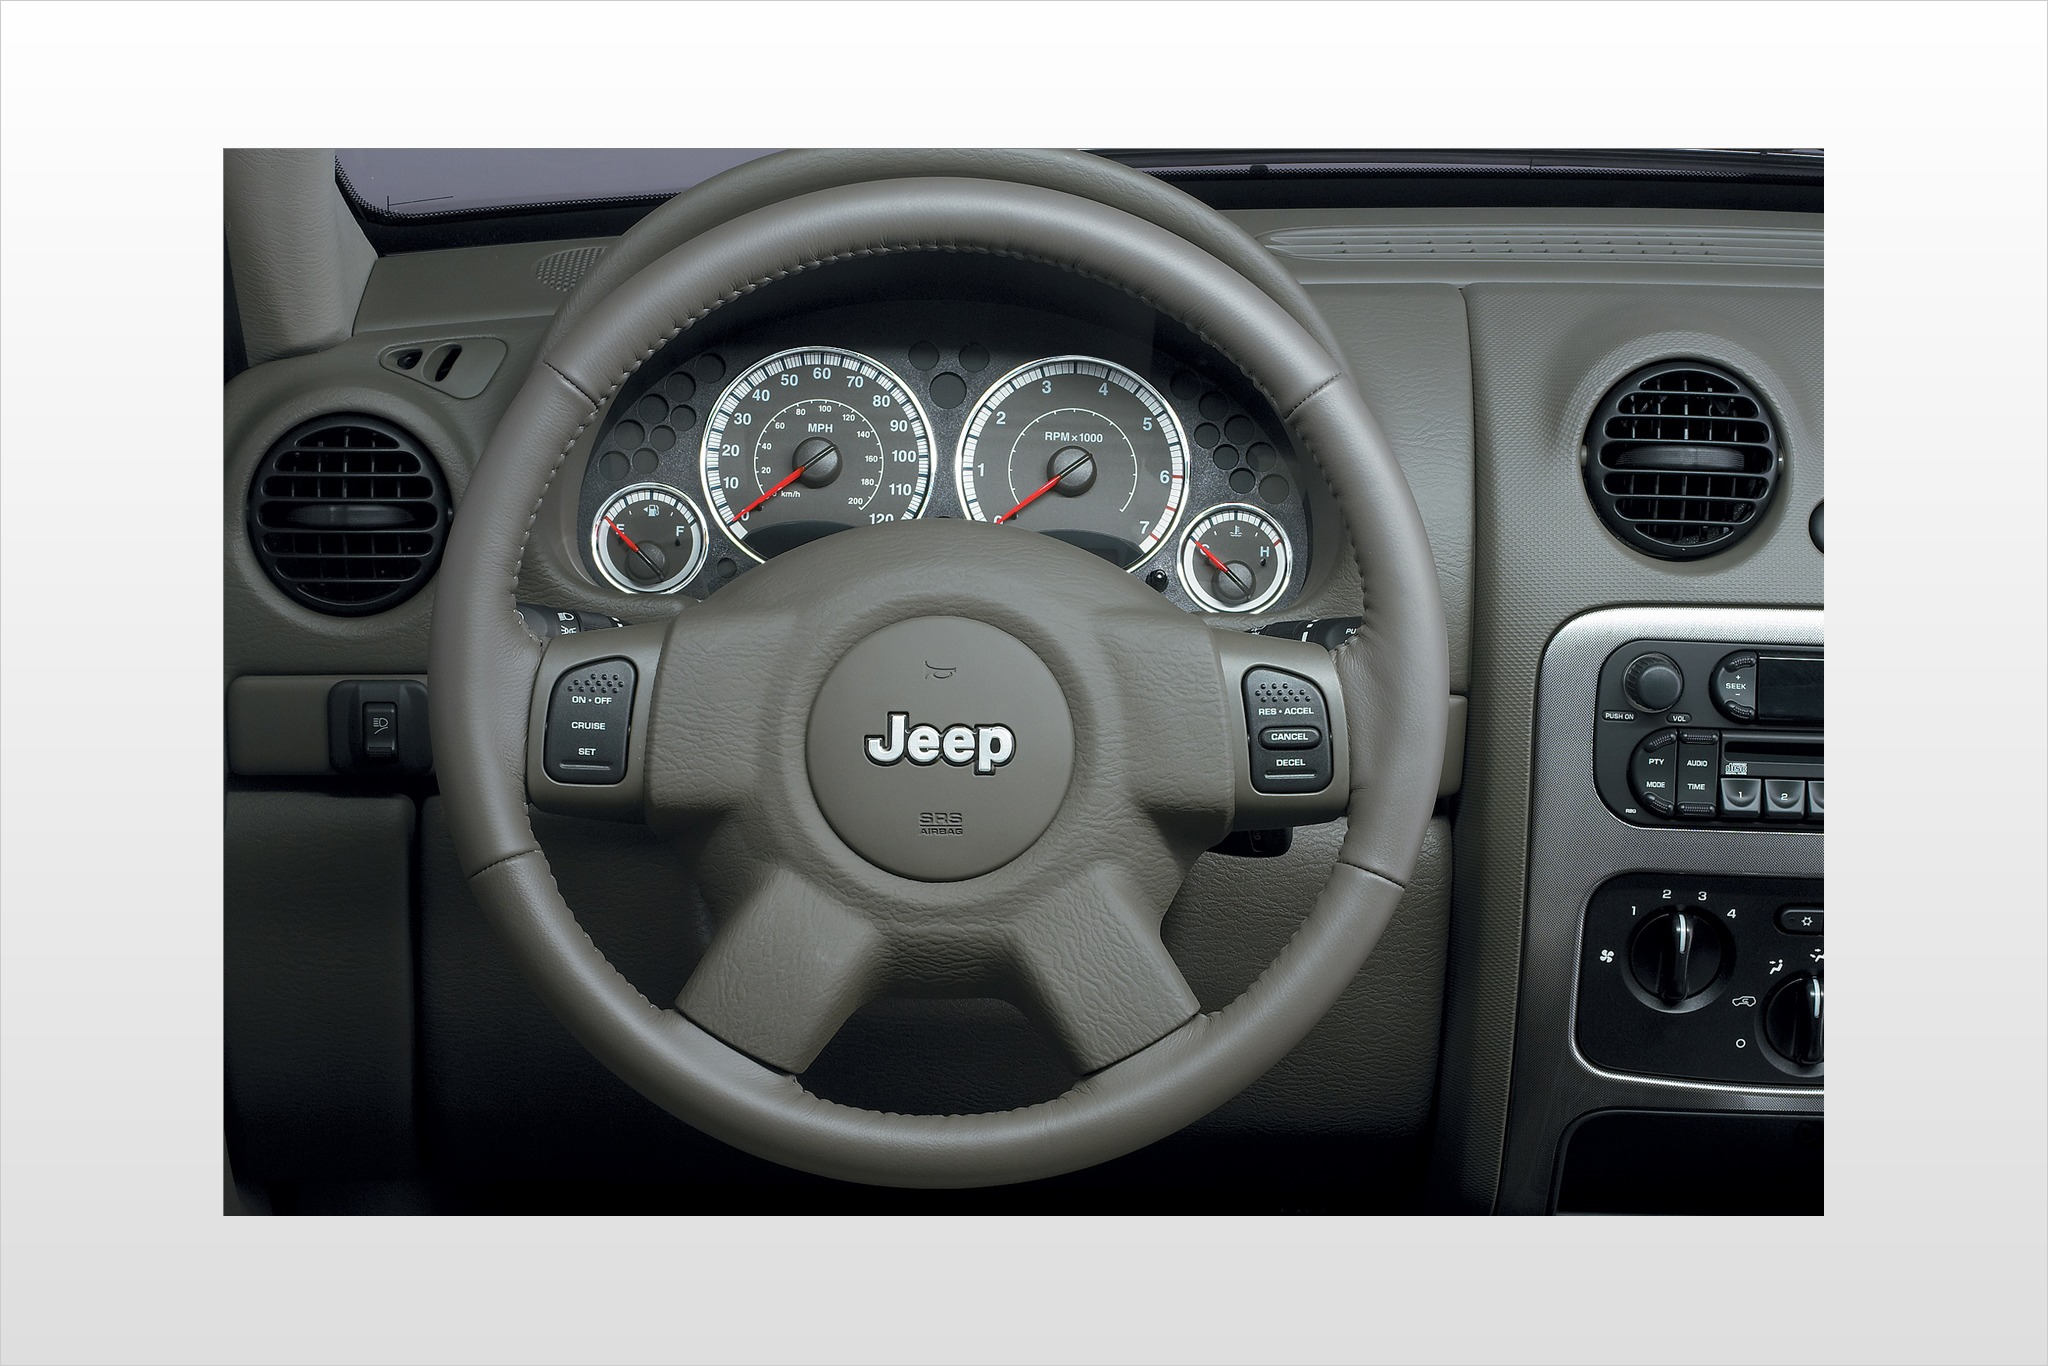 Img together with Power Steering Removal Tool also Jeep Renegade Limited L Cyl Fopen Hood besides Maxresdefault further Acura Tl Chain Instead Of Belt Like The K For The Tsx Timing Chain Replacement Interval L A A D Ac F. on jeep liberty belt replacement